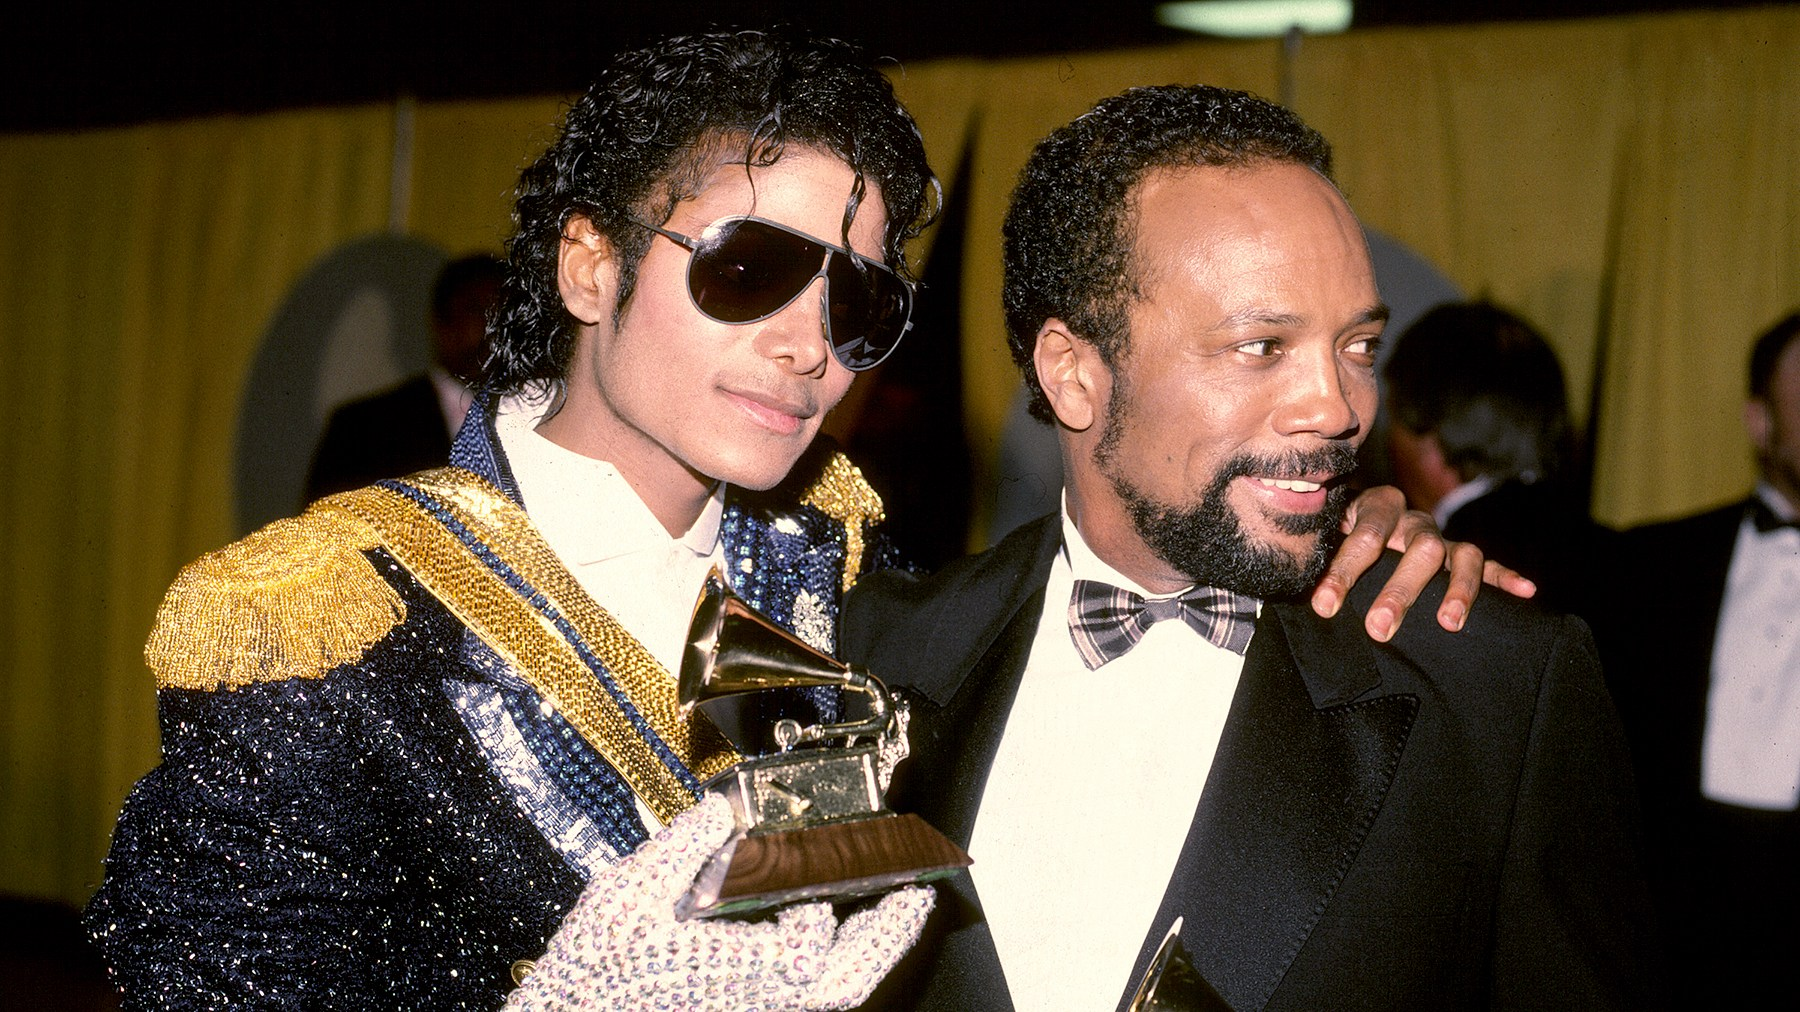 Michael Jackson with Quincy Jones at the 1984 Grammy Awards.